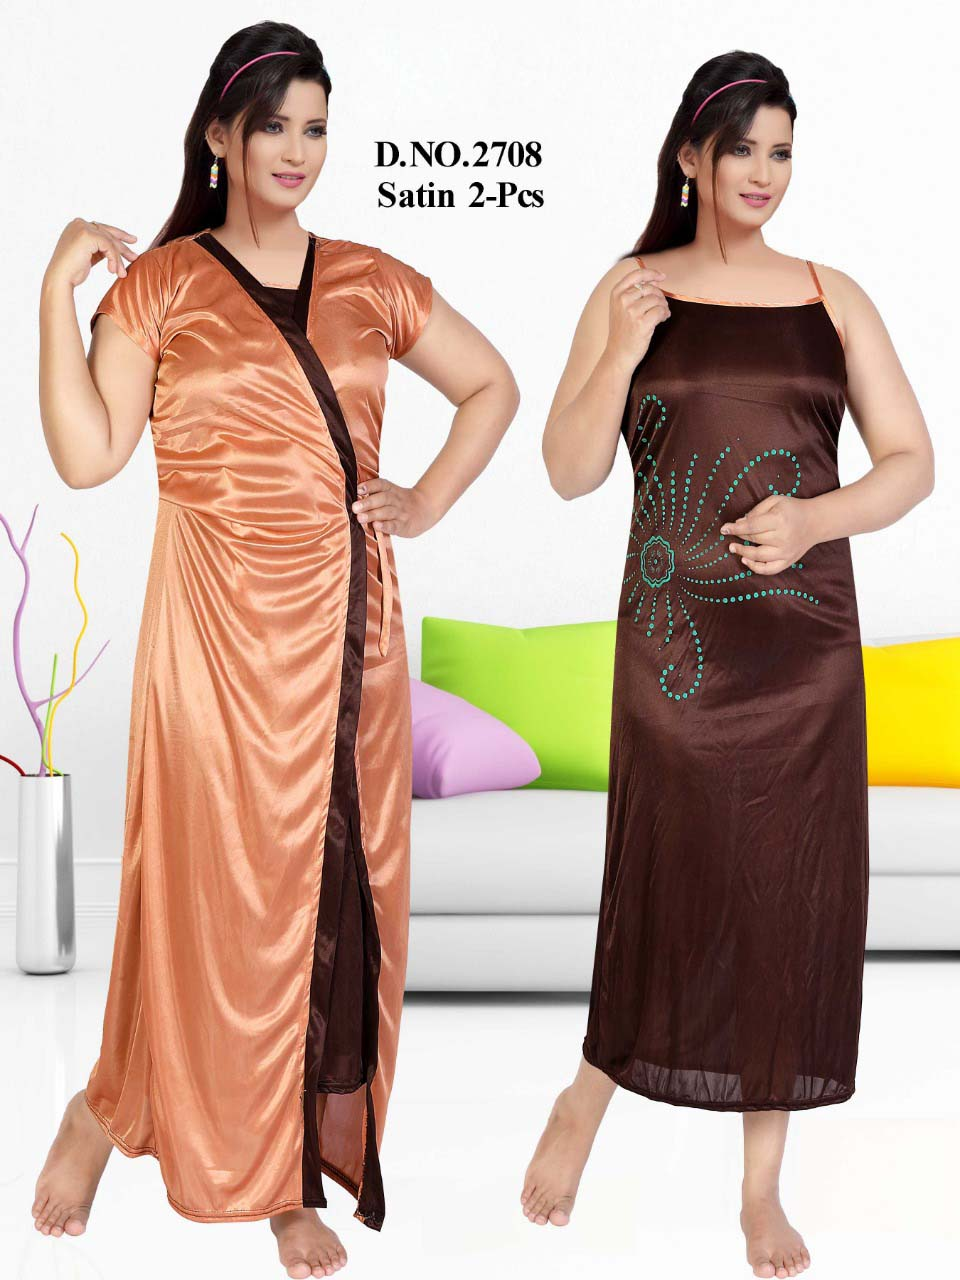 SATIN TWO PIECE NIGTHY-COFFEE-KC JUNE 2708